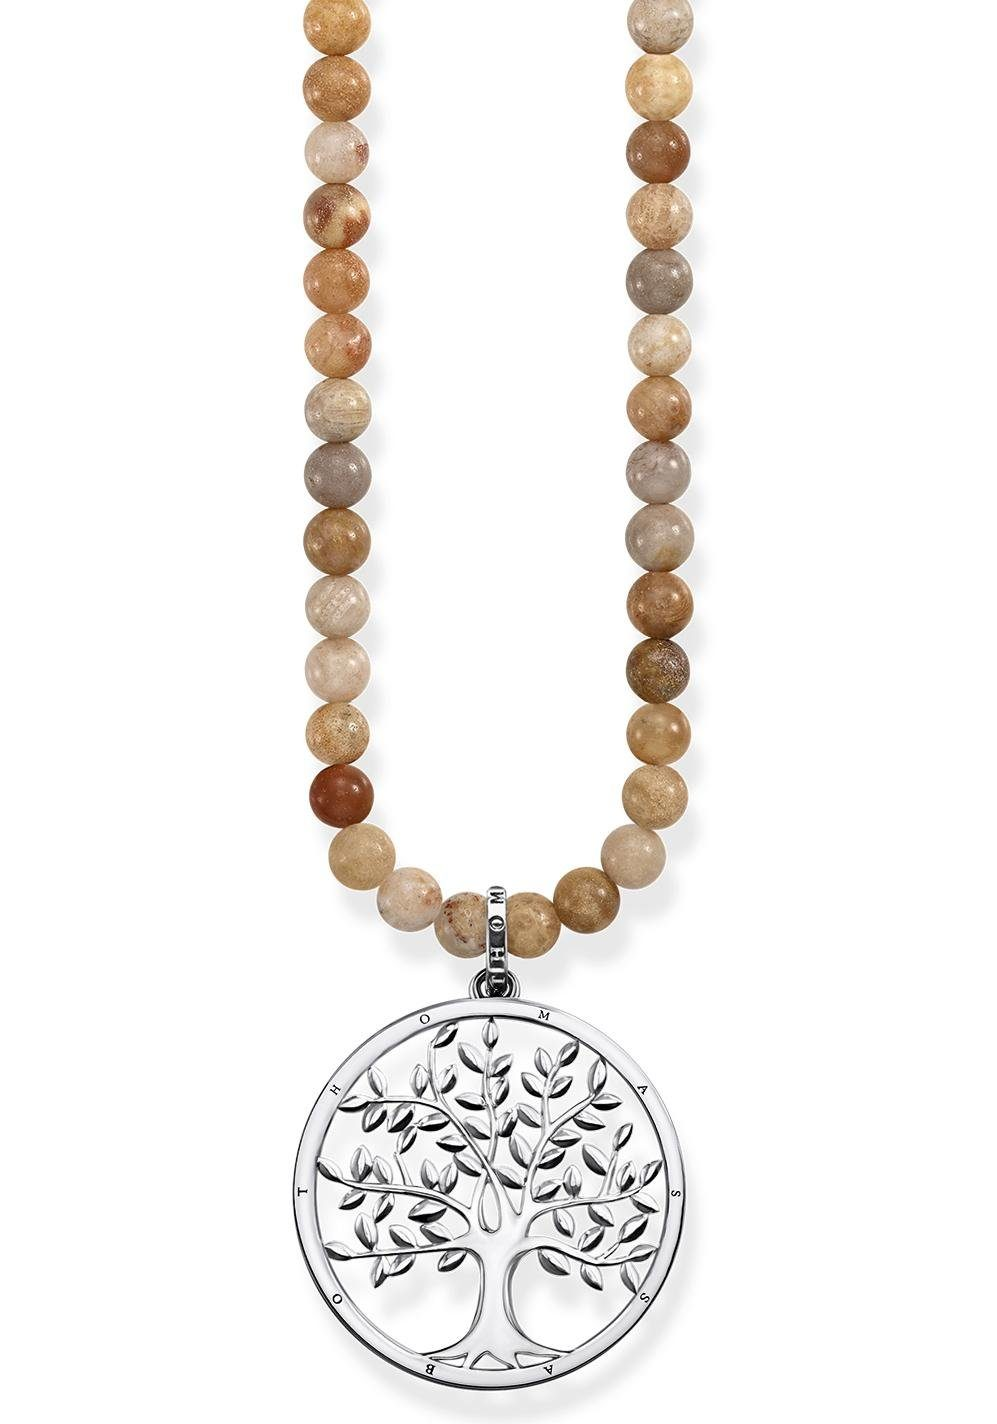 THOMAS SABO Kette mit Anhänger »Power Necklace Tree of Love Beige, KE1661-014-19-L60«, mit Jaspis